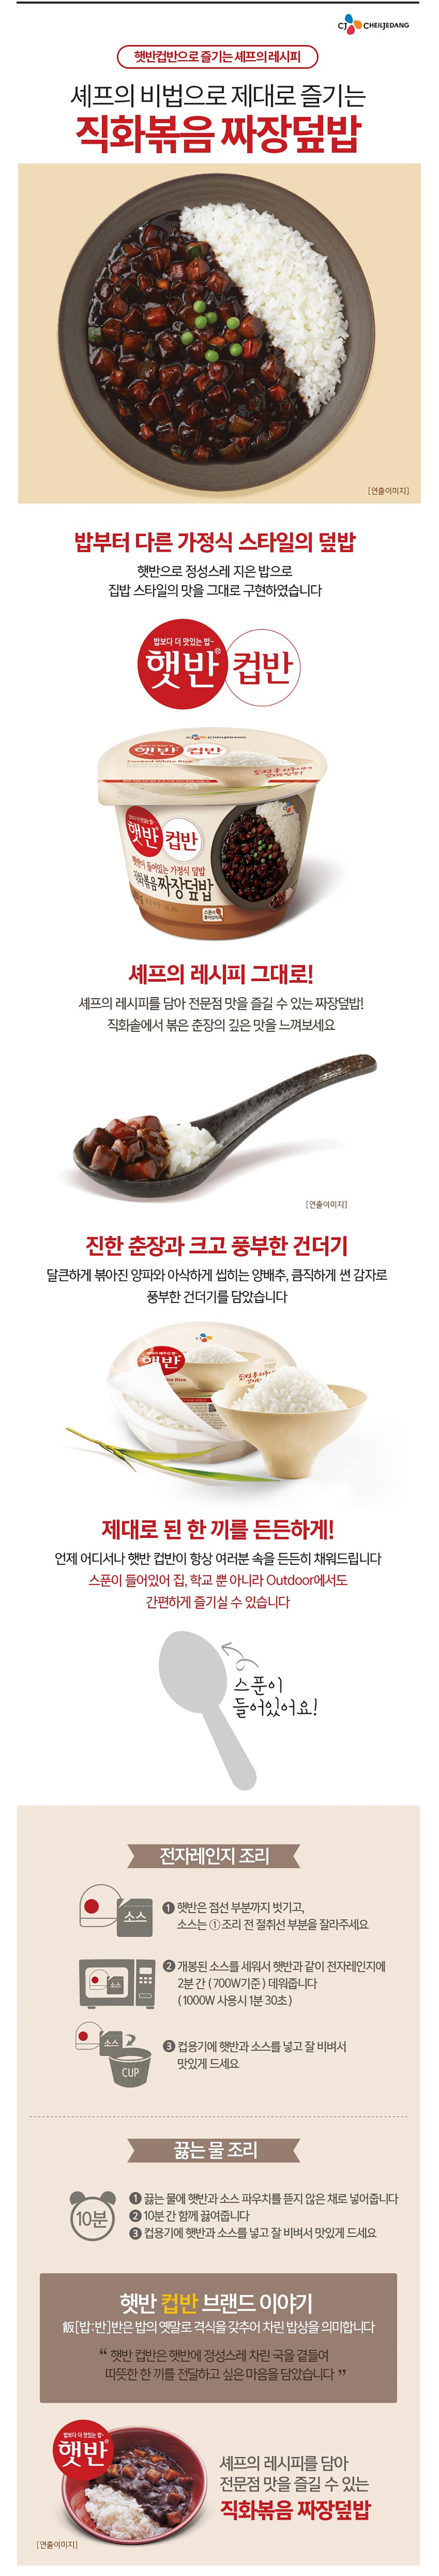 Hatban Cooked White Rice with Stir-Fried Jjajang 9.6oz(275g)